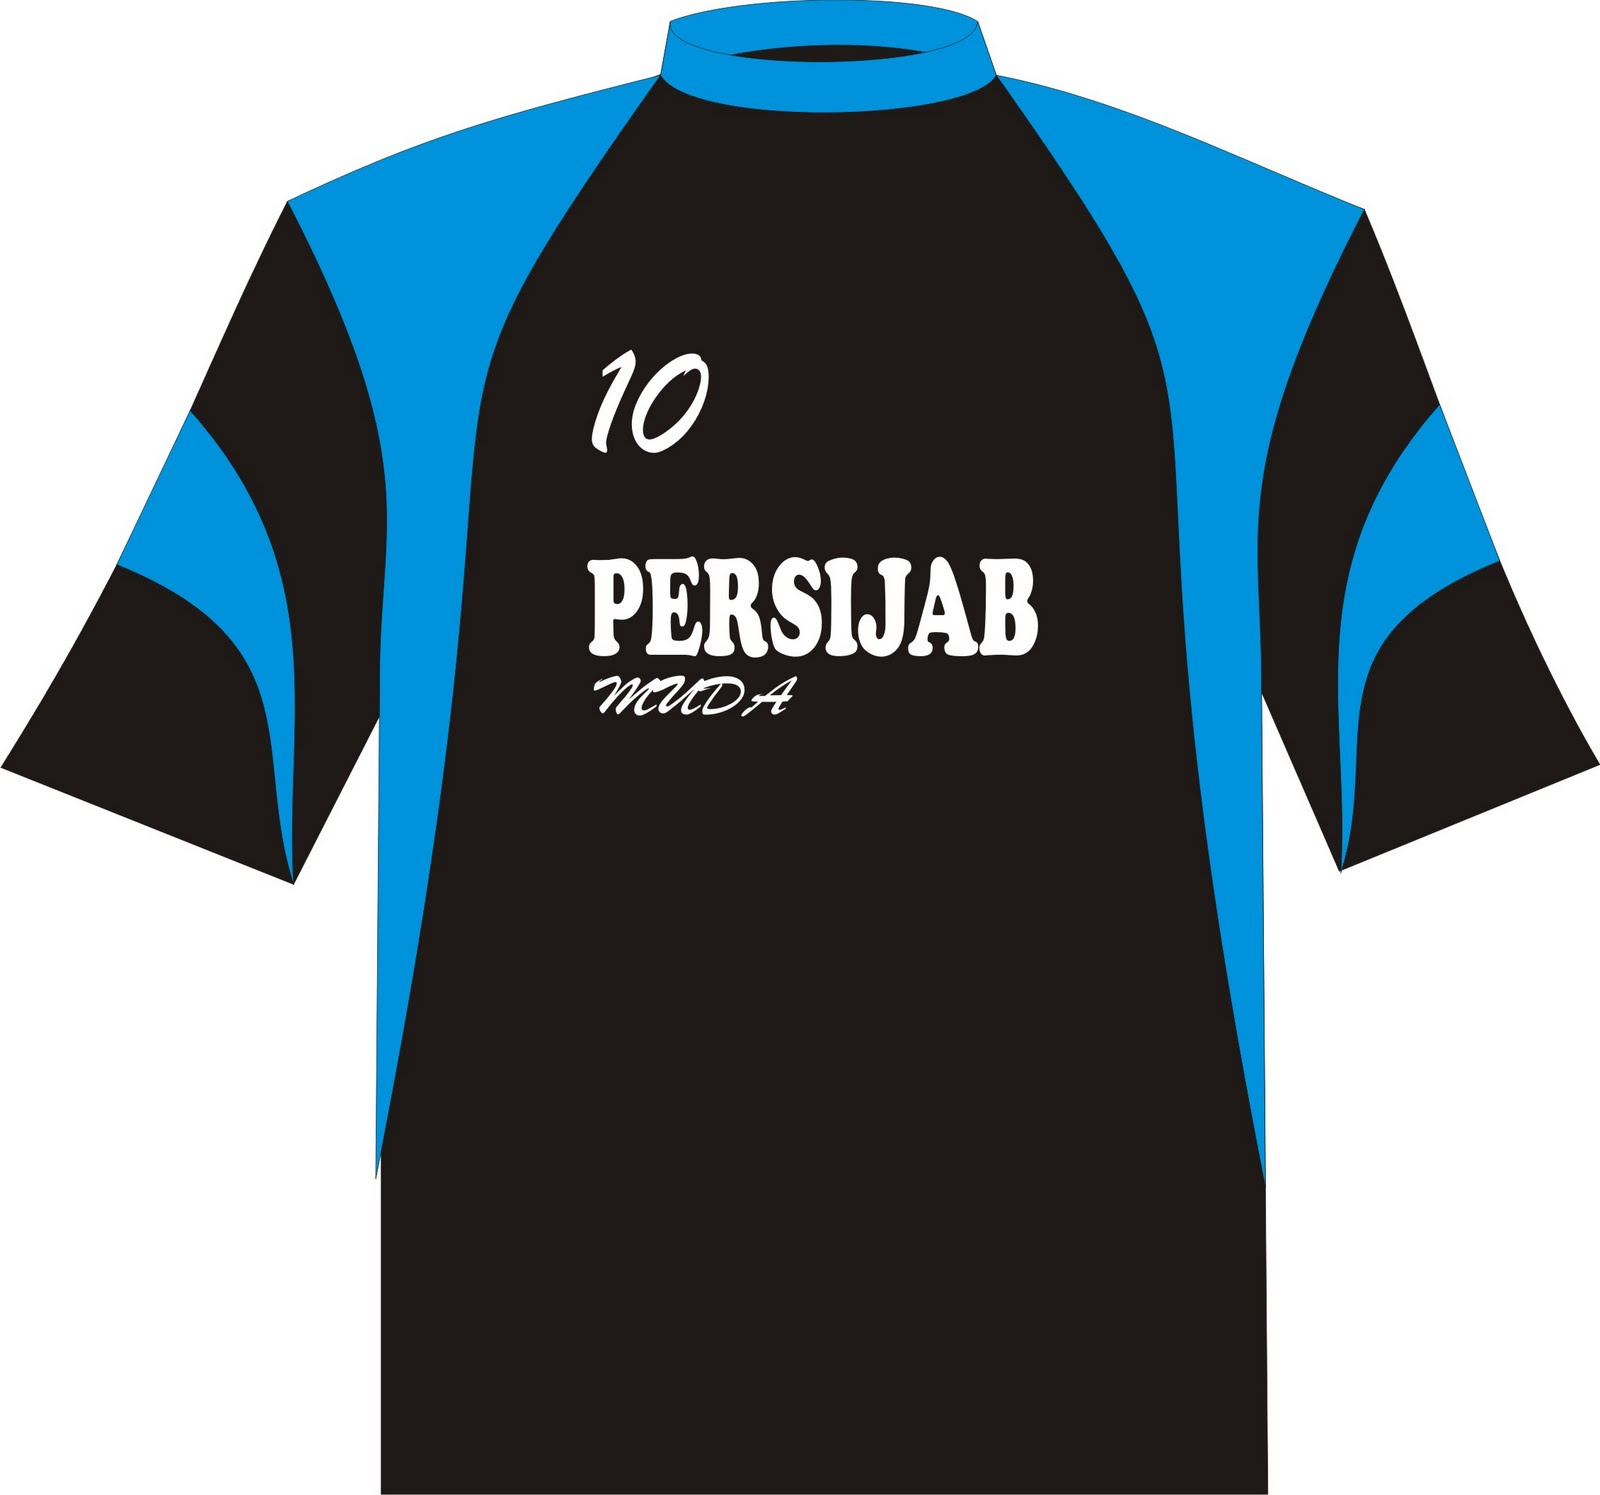 Download image Pictures Of Kaos Team Sepak Bola Contoh Desain Bole PC ...